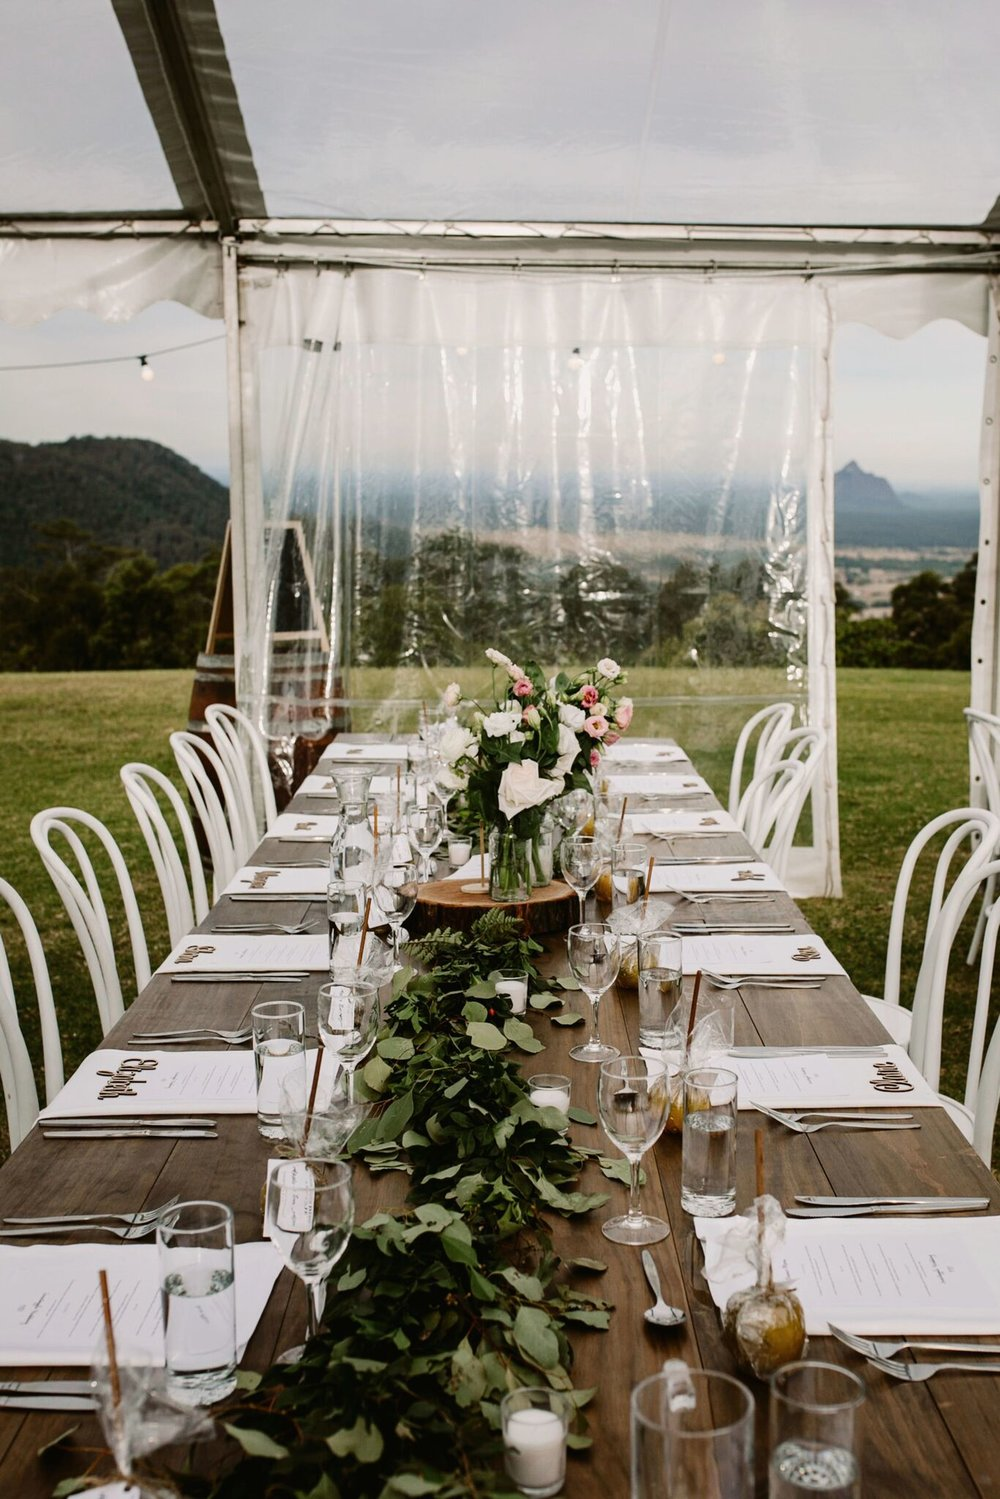 Natalie-Tim-Maleny-Retreat-Sunshine-Coast-Wedding8.jpeg